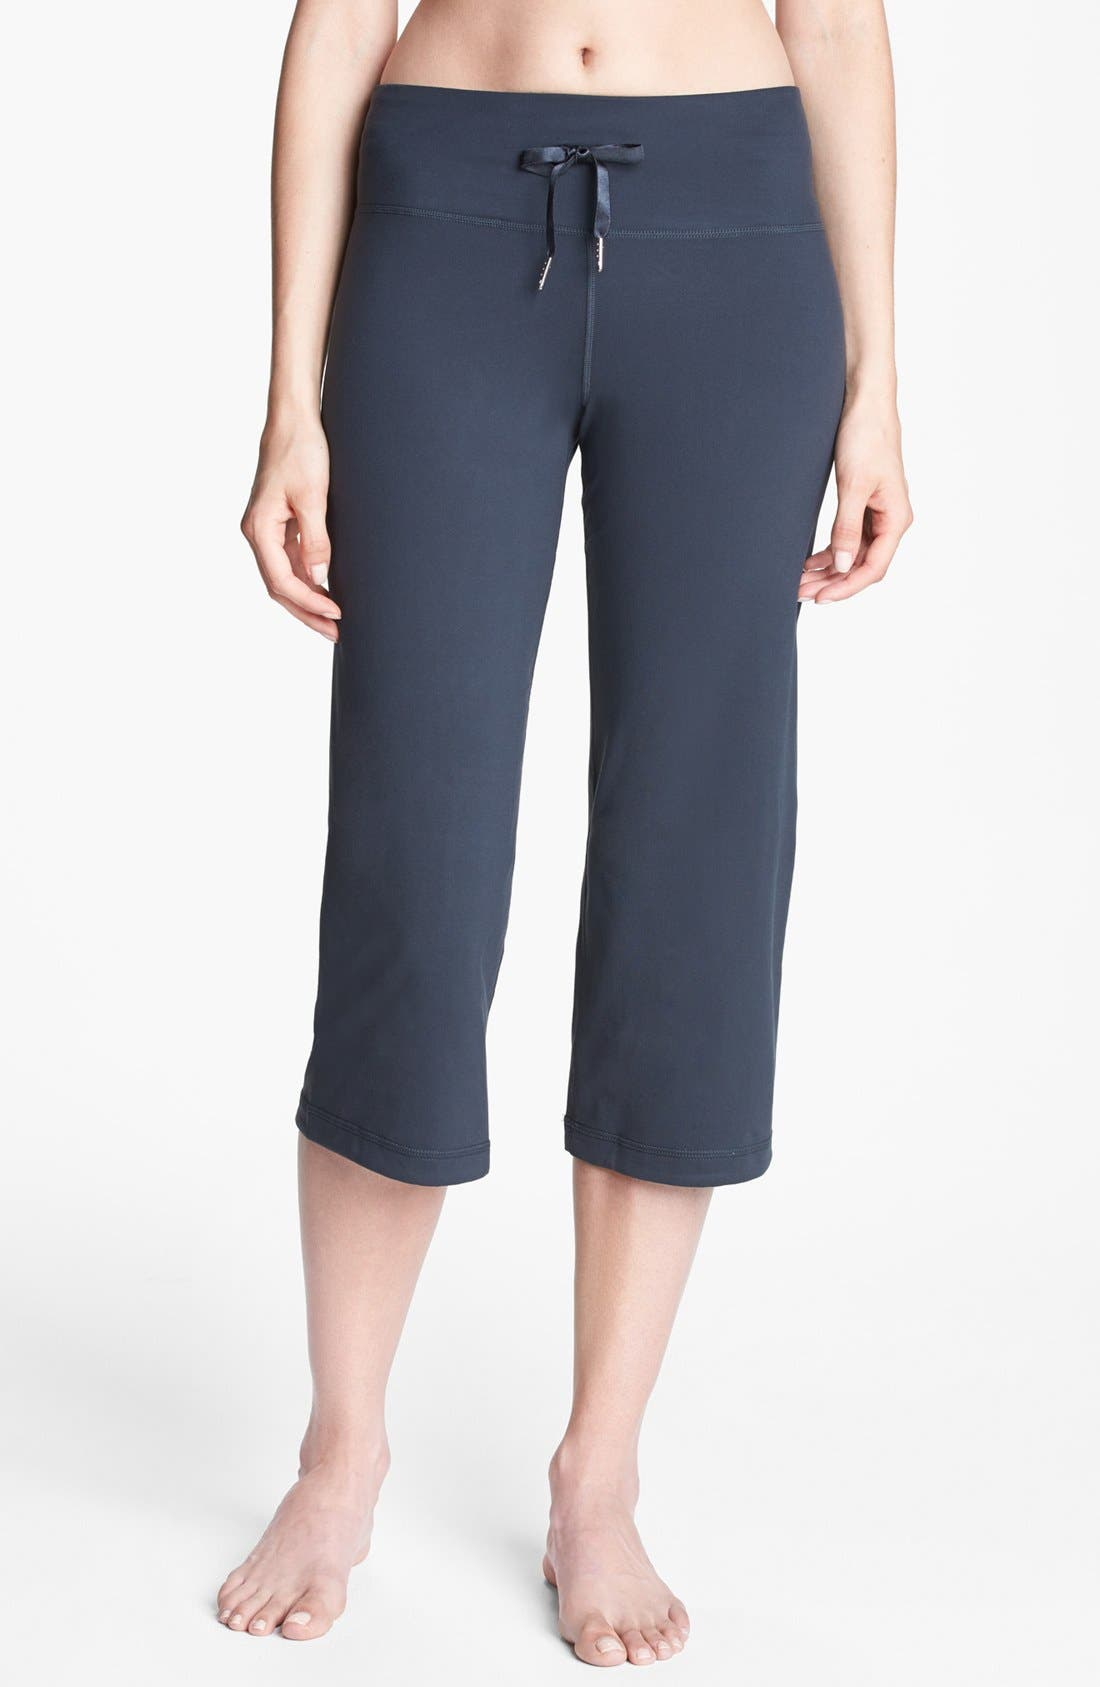 Alternate Image 1 Selected - Under Armour 'Perfect Flow' Capri Pants